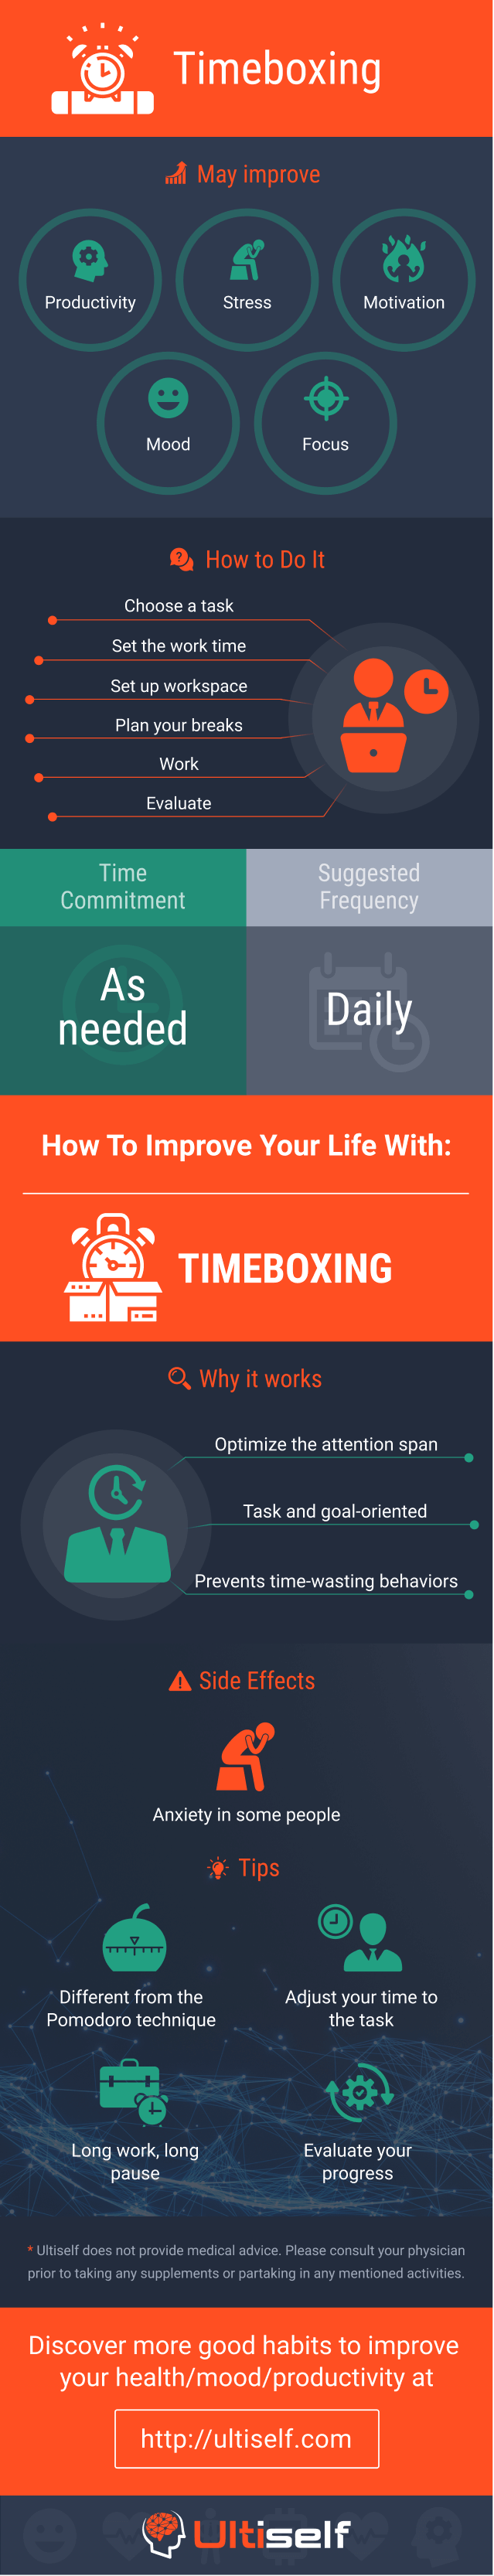 Timeboxing infographic